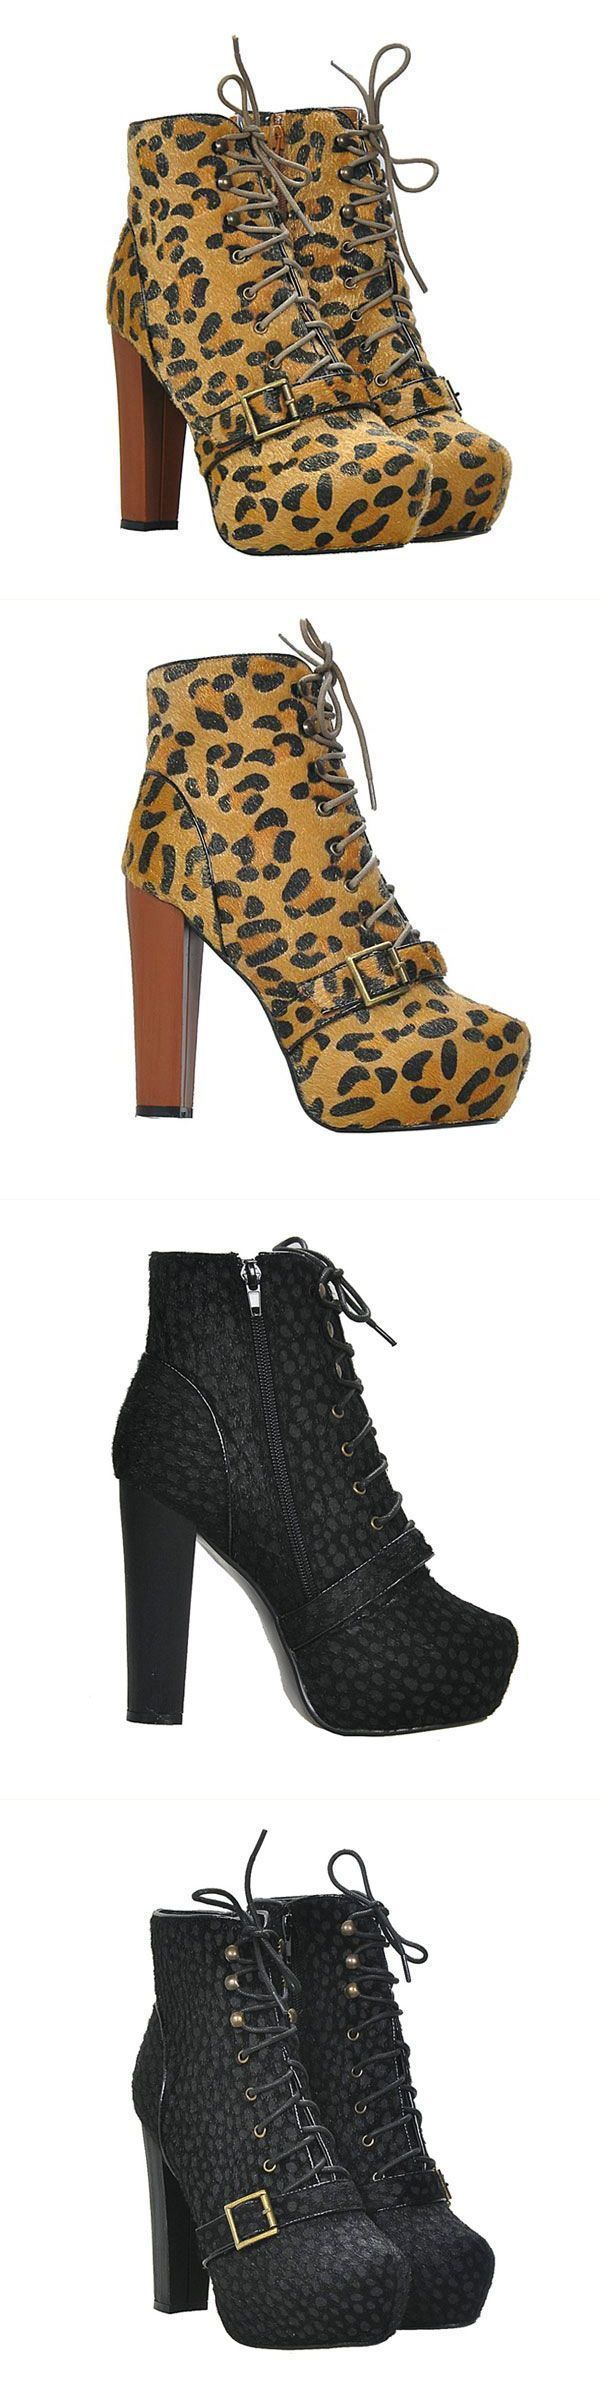 Boots xmas leopard print high women martin boots platform sexy knight ankle boots #boots #7 #serum #reviews #boots #kesha #bootstrap #5 #bootstrap-x-editable-rails